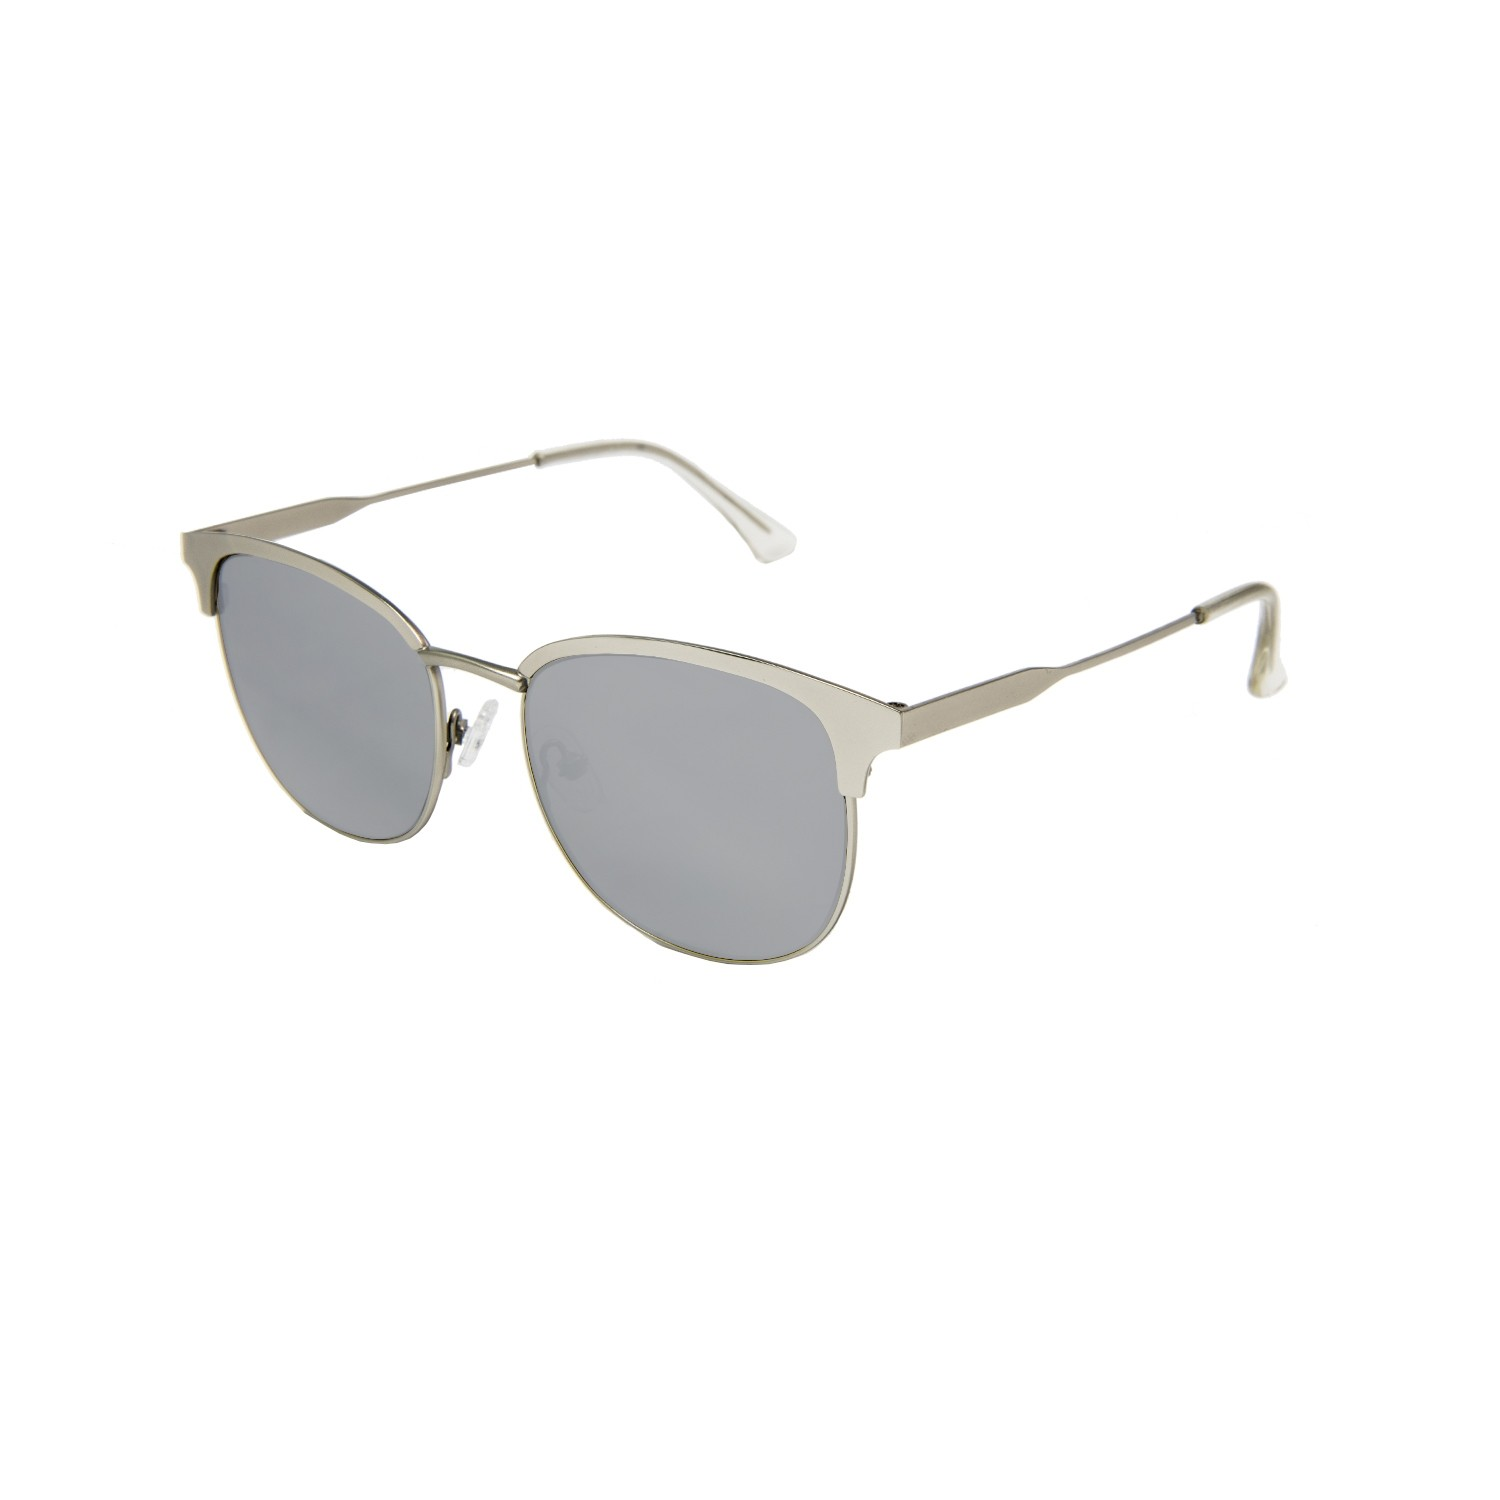 MADISON shiny silver frame with flat silver lens